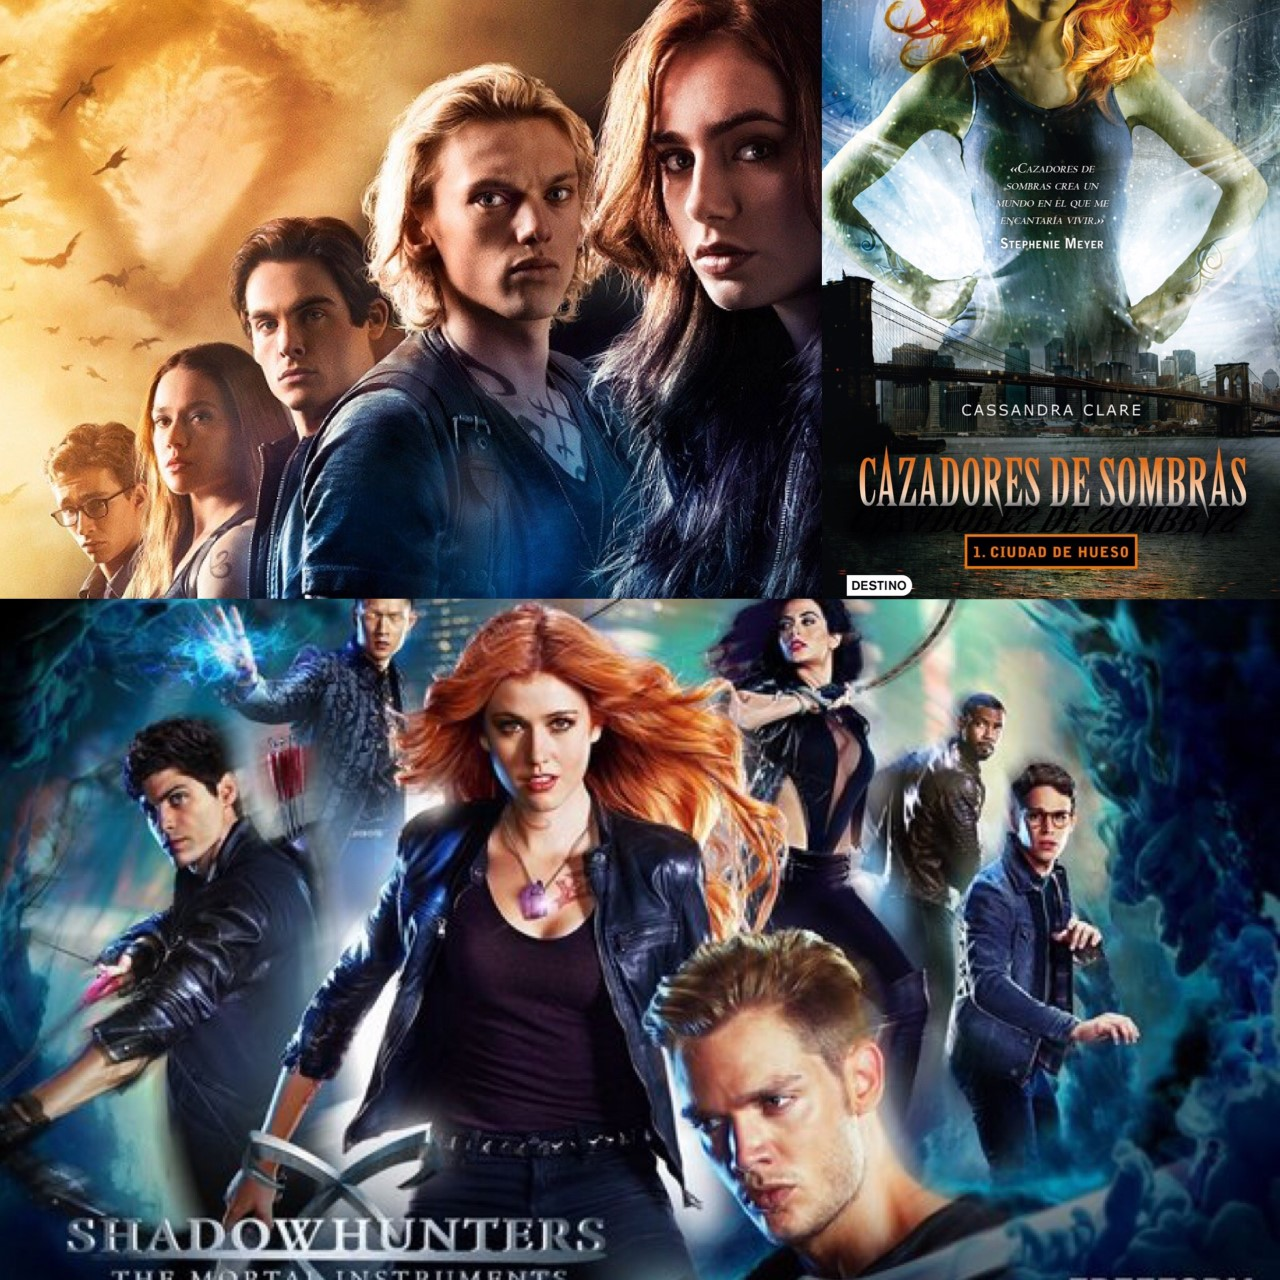 Shadowhunters Libros Reading Generation Cazadores De Sombras Película Vs